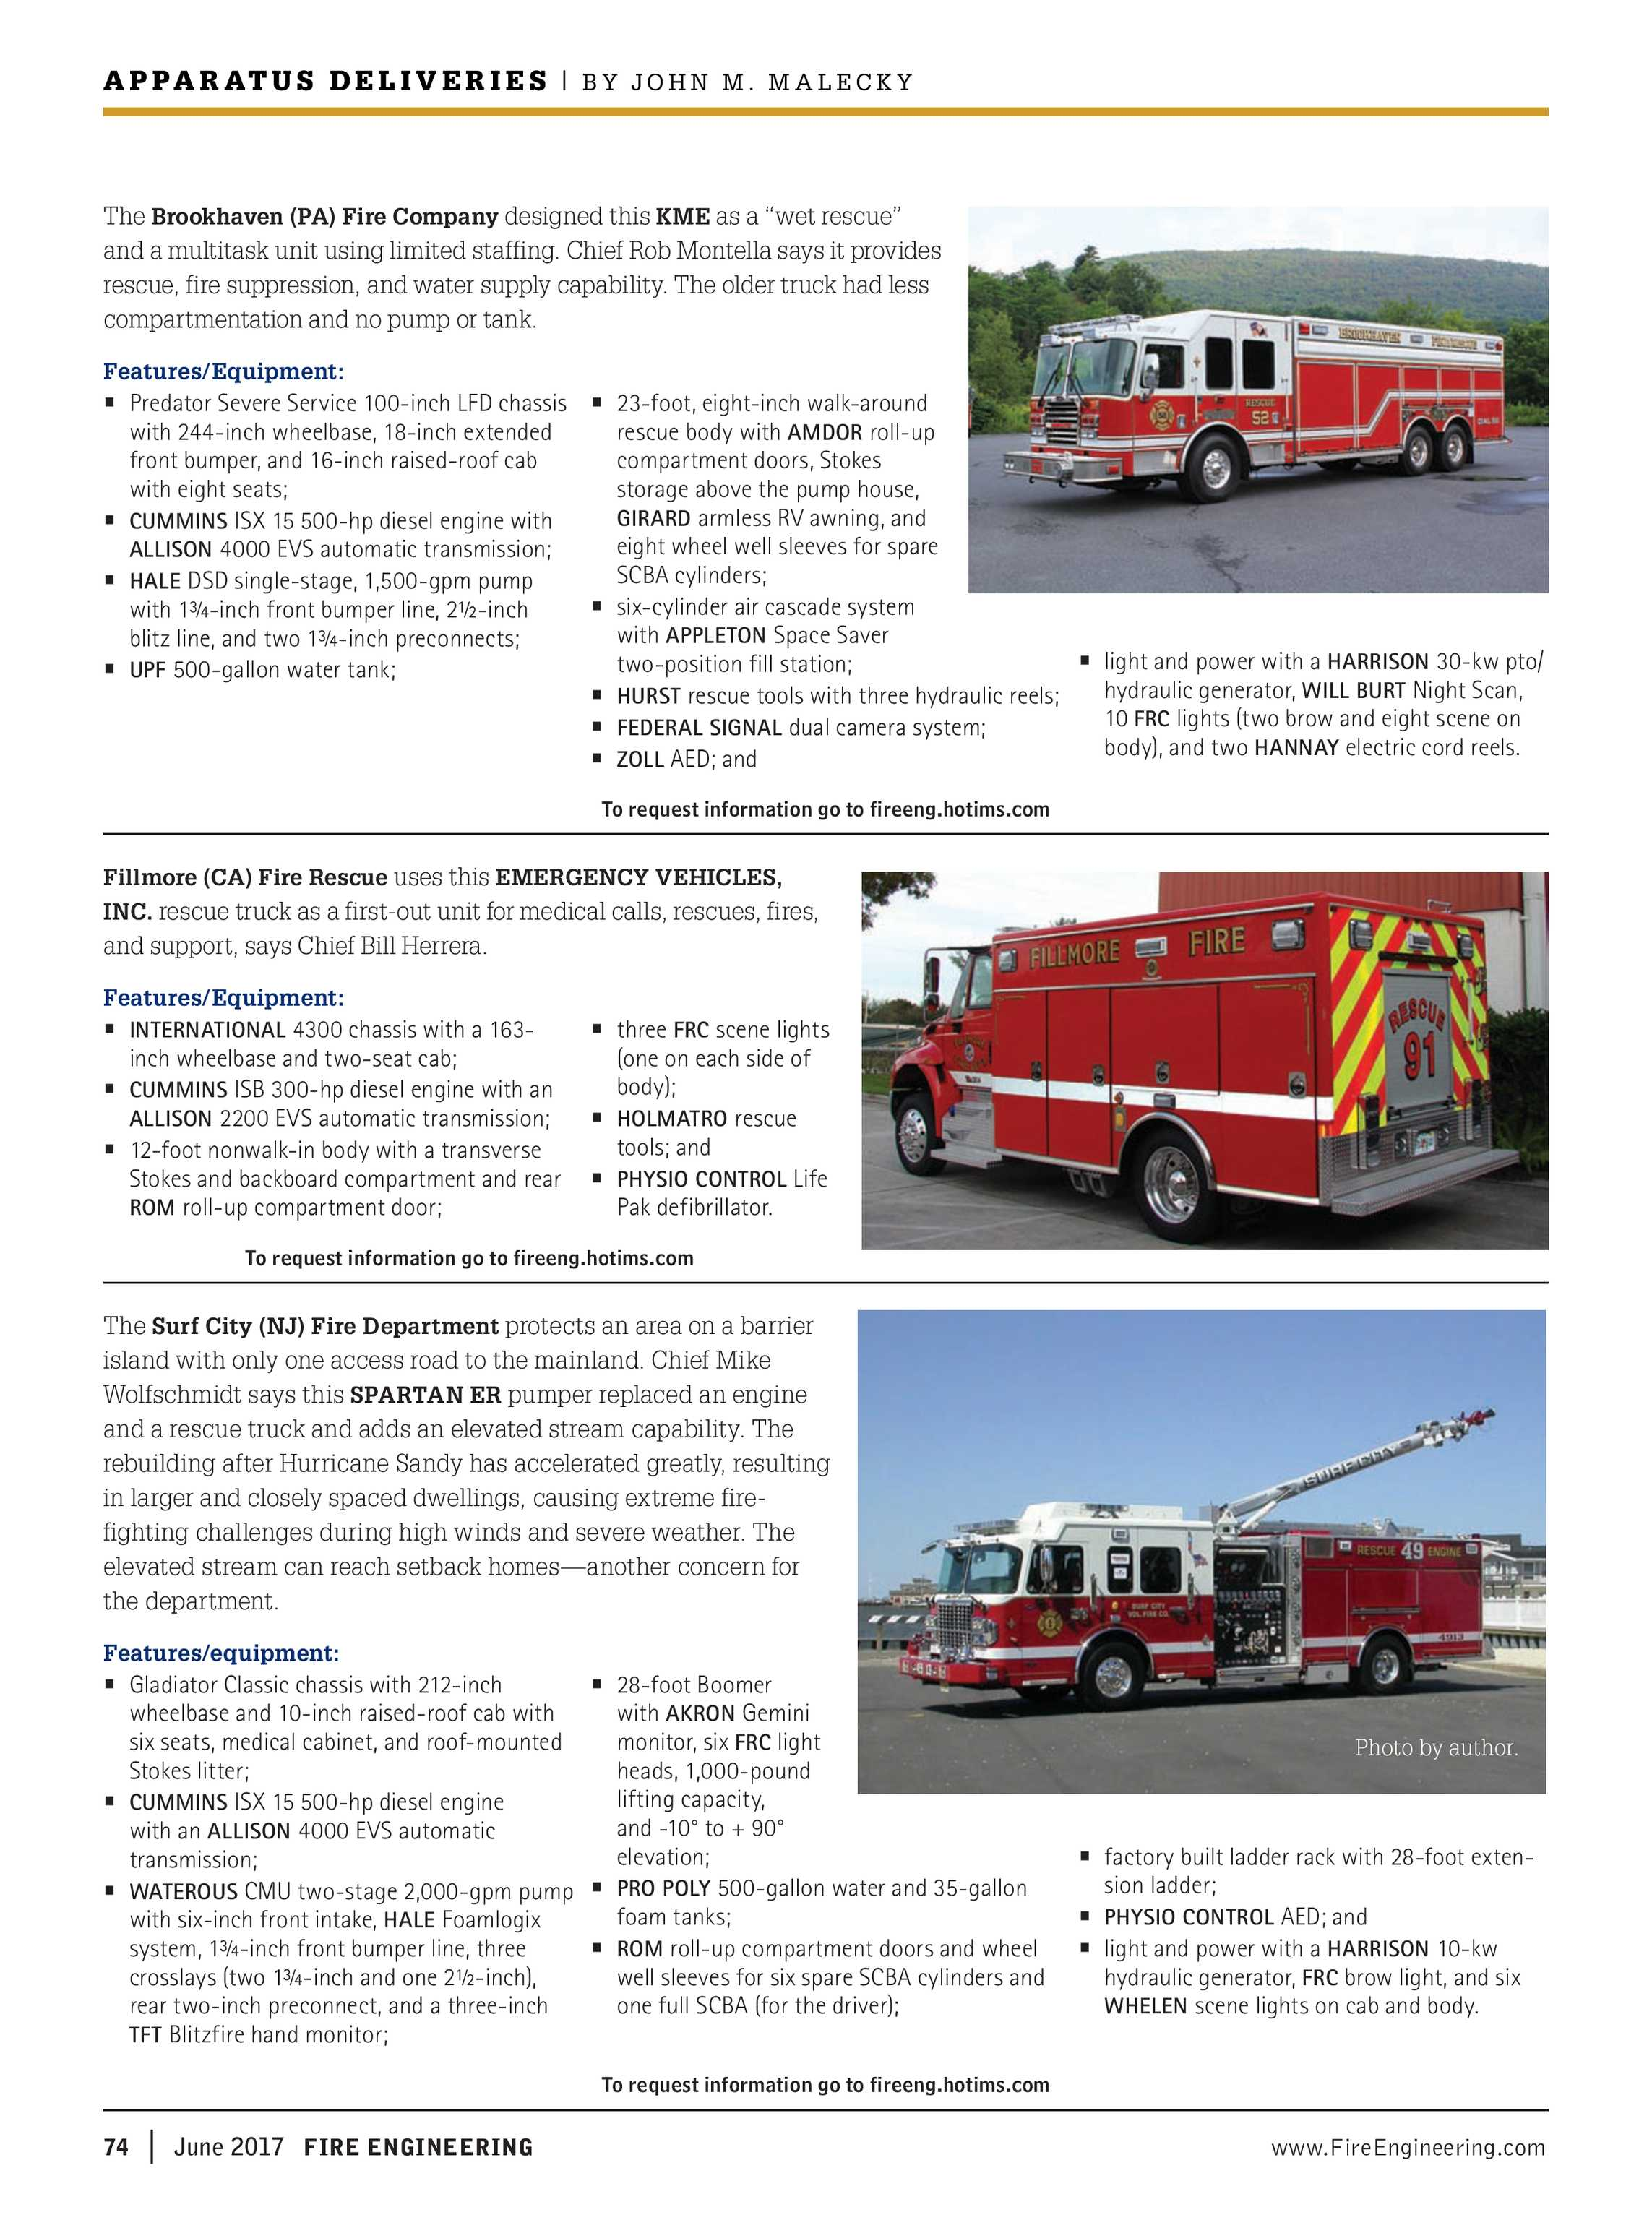 Fire Engineering - June 2017 - page 74